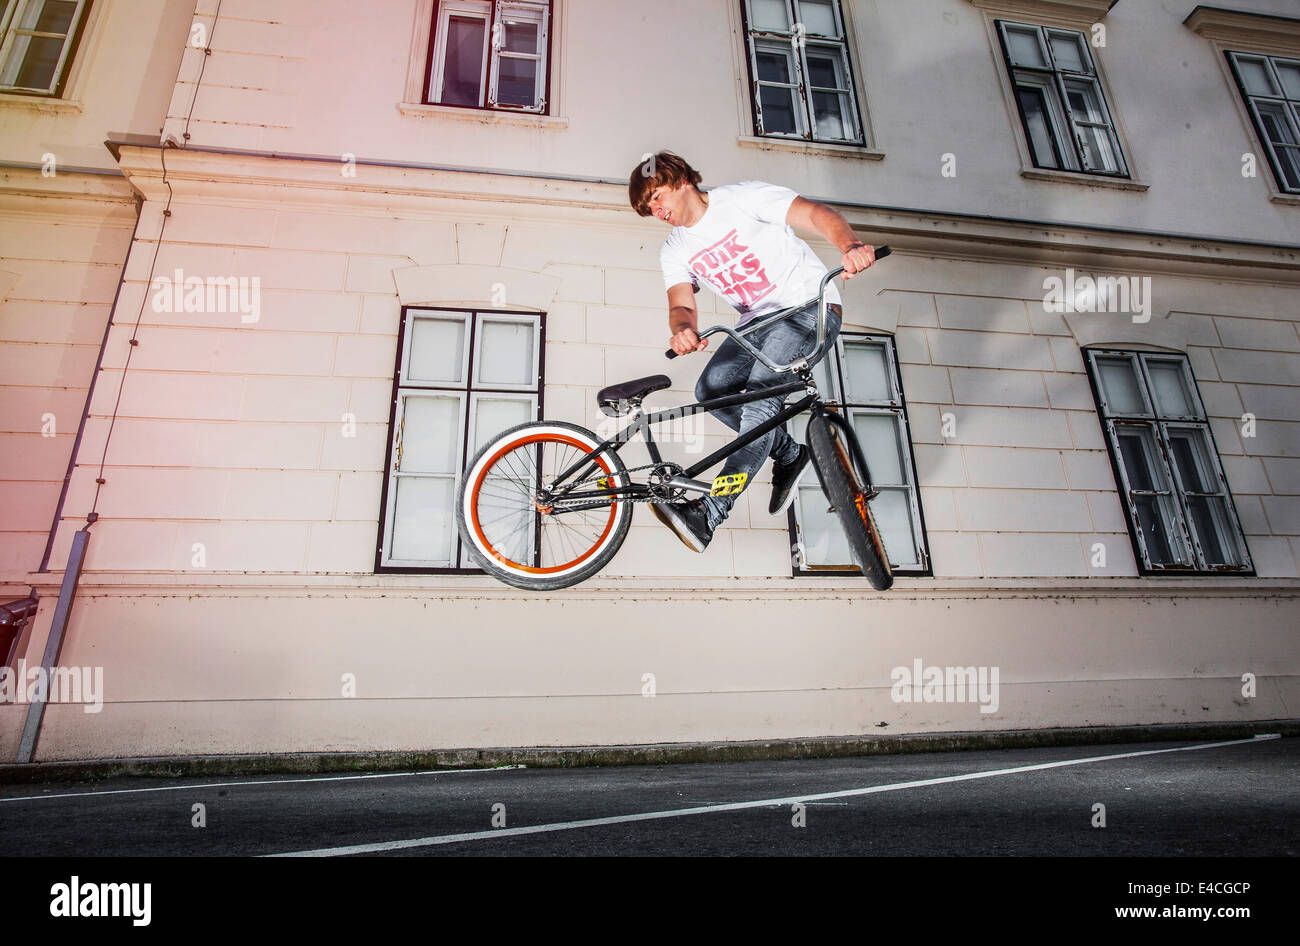 BMX biker performing a stunt in front of a house - Stock Image